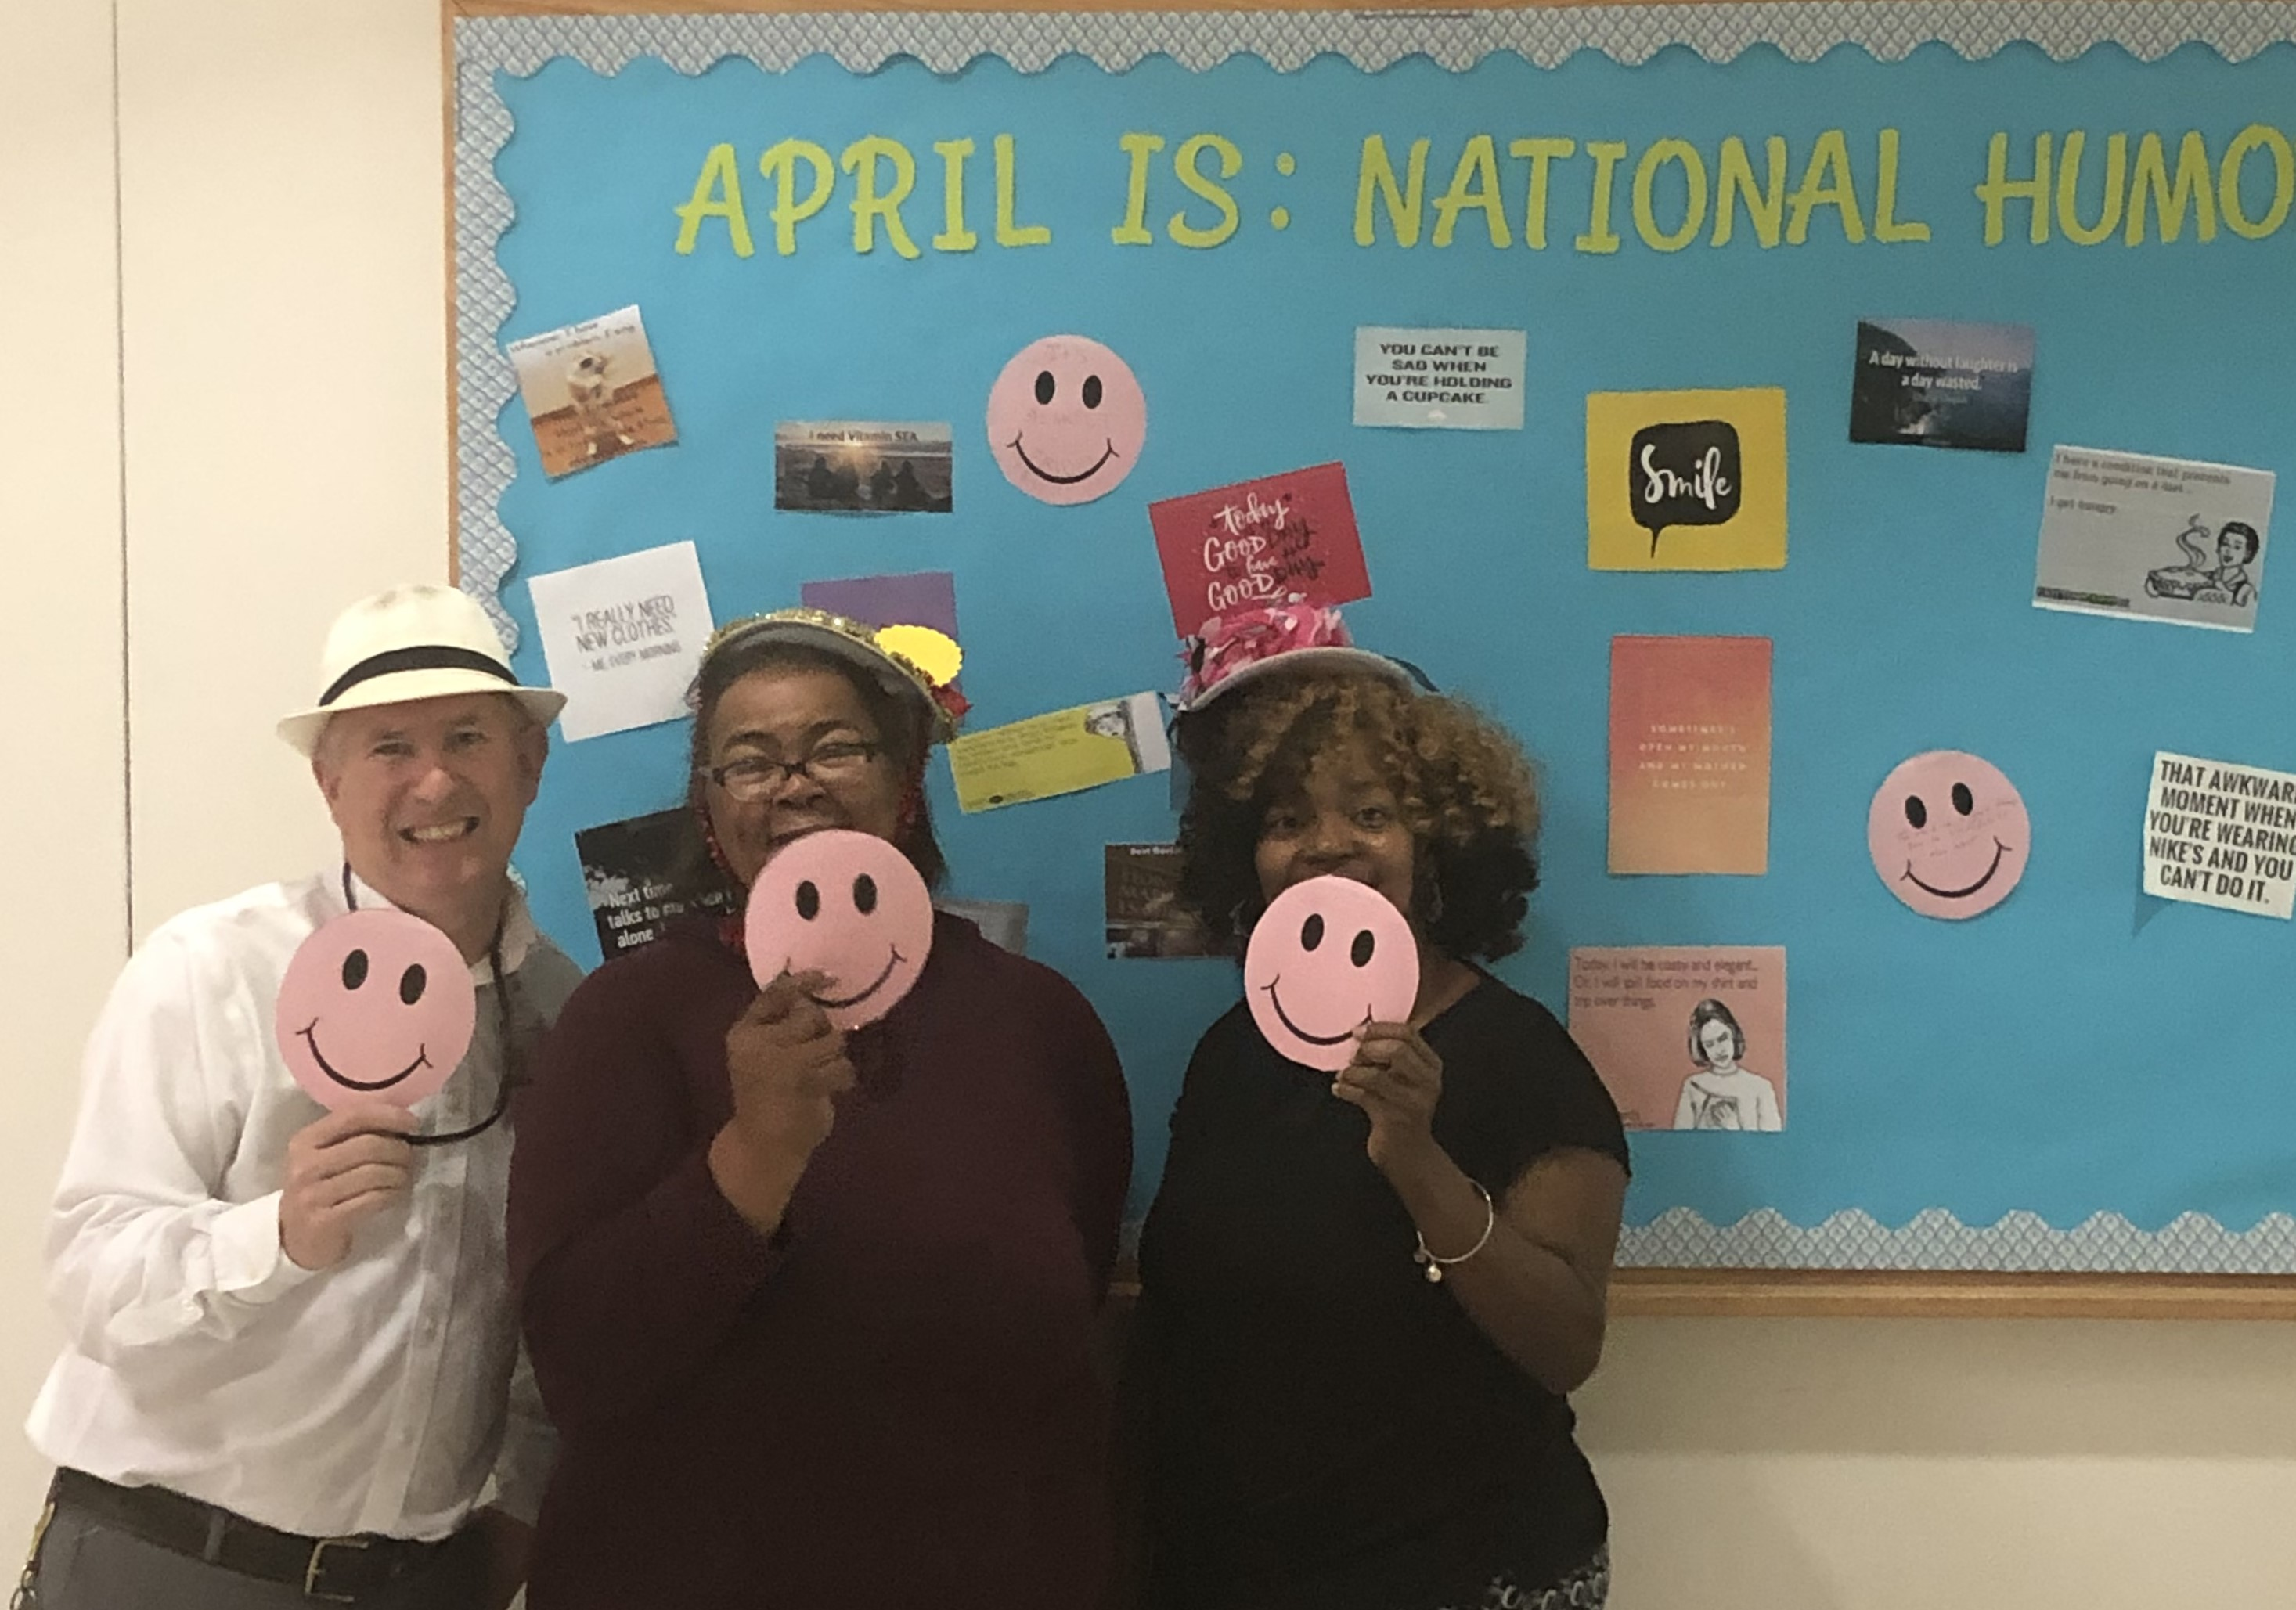 For Humor Month, the DIDD West Regional Office decorated a bulletin board where employees could post funny quotes. They also had a funny hat day.